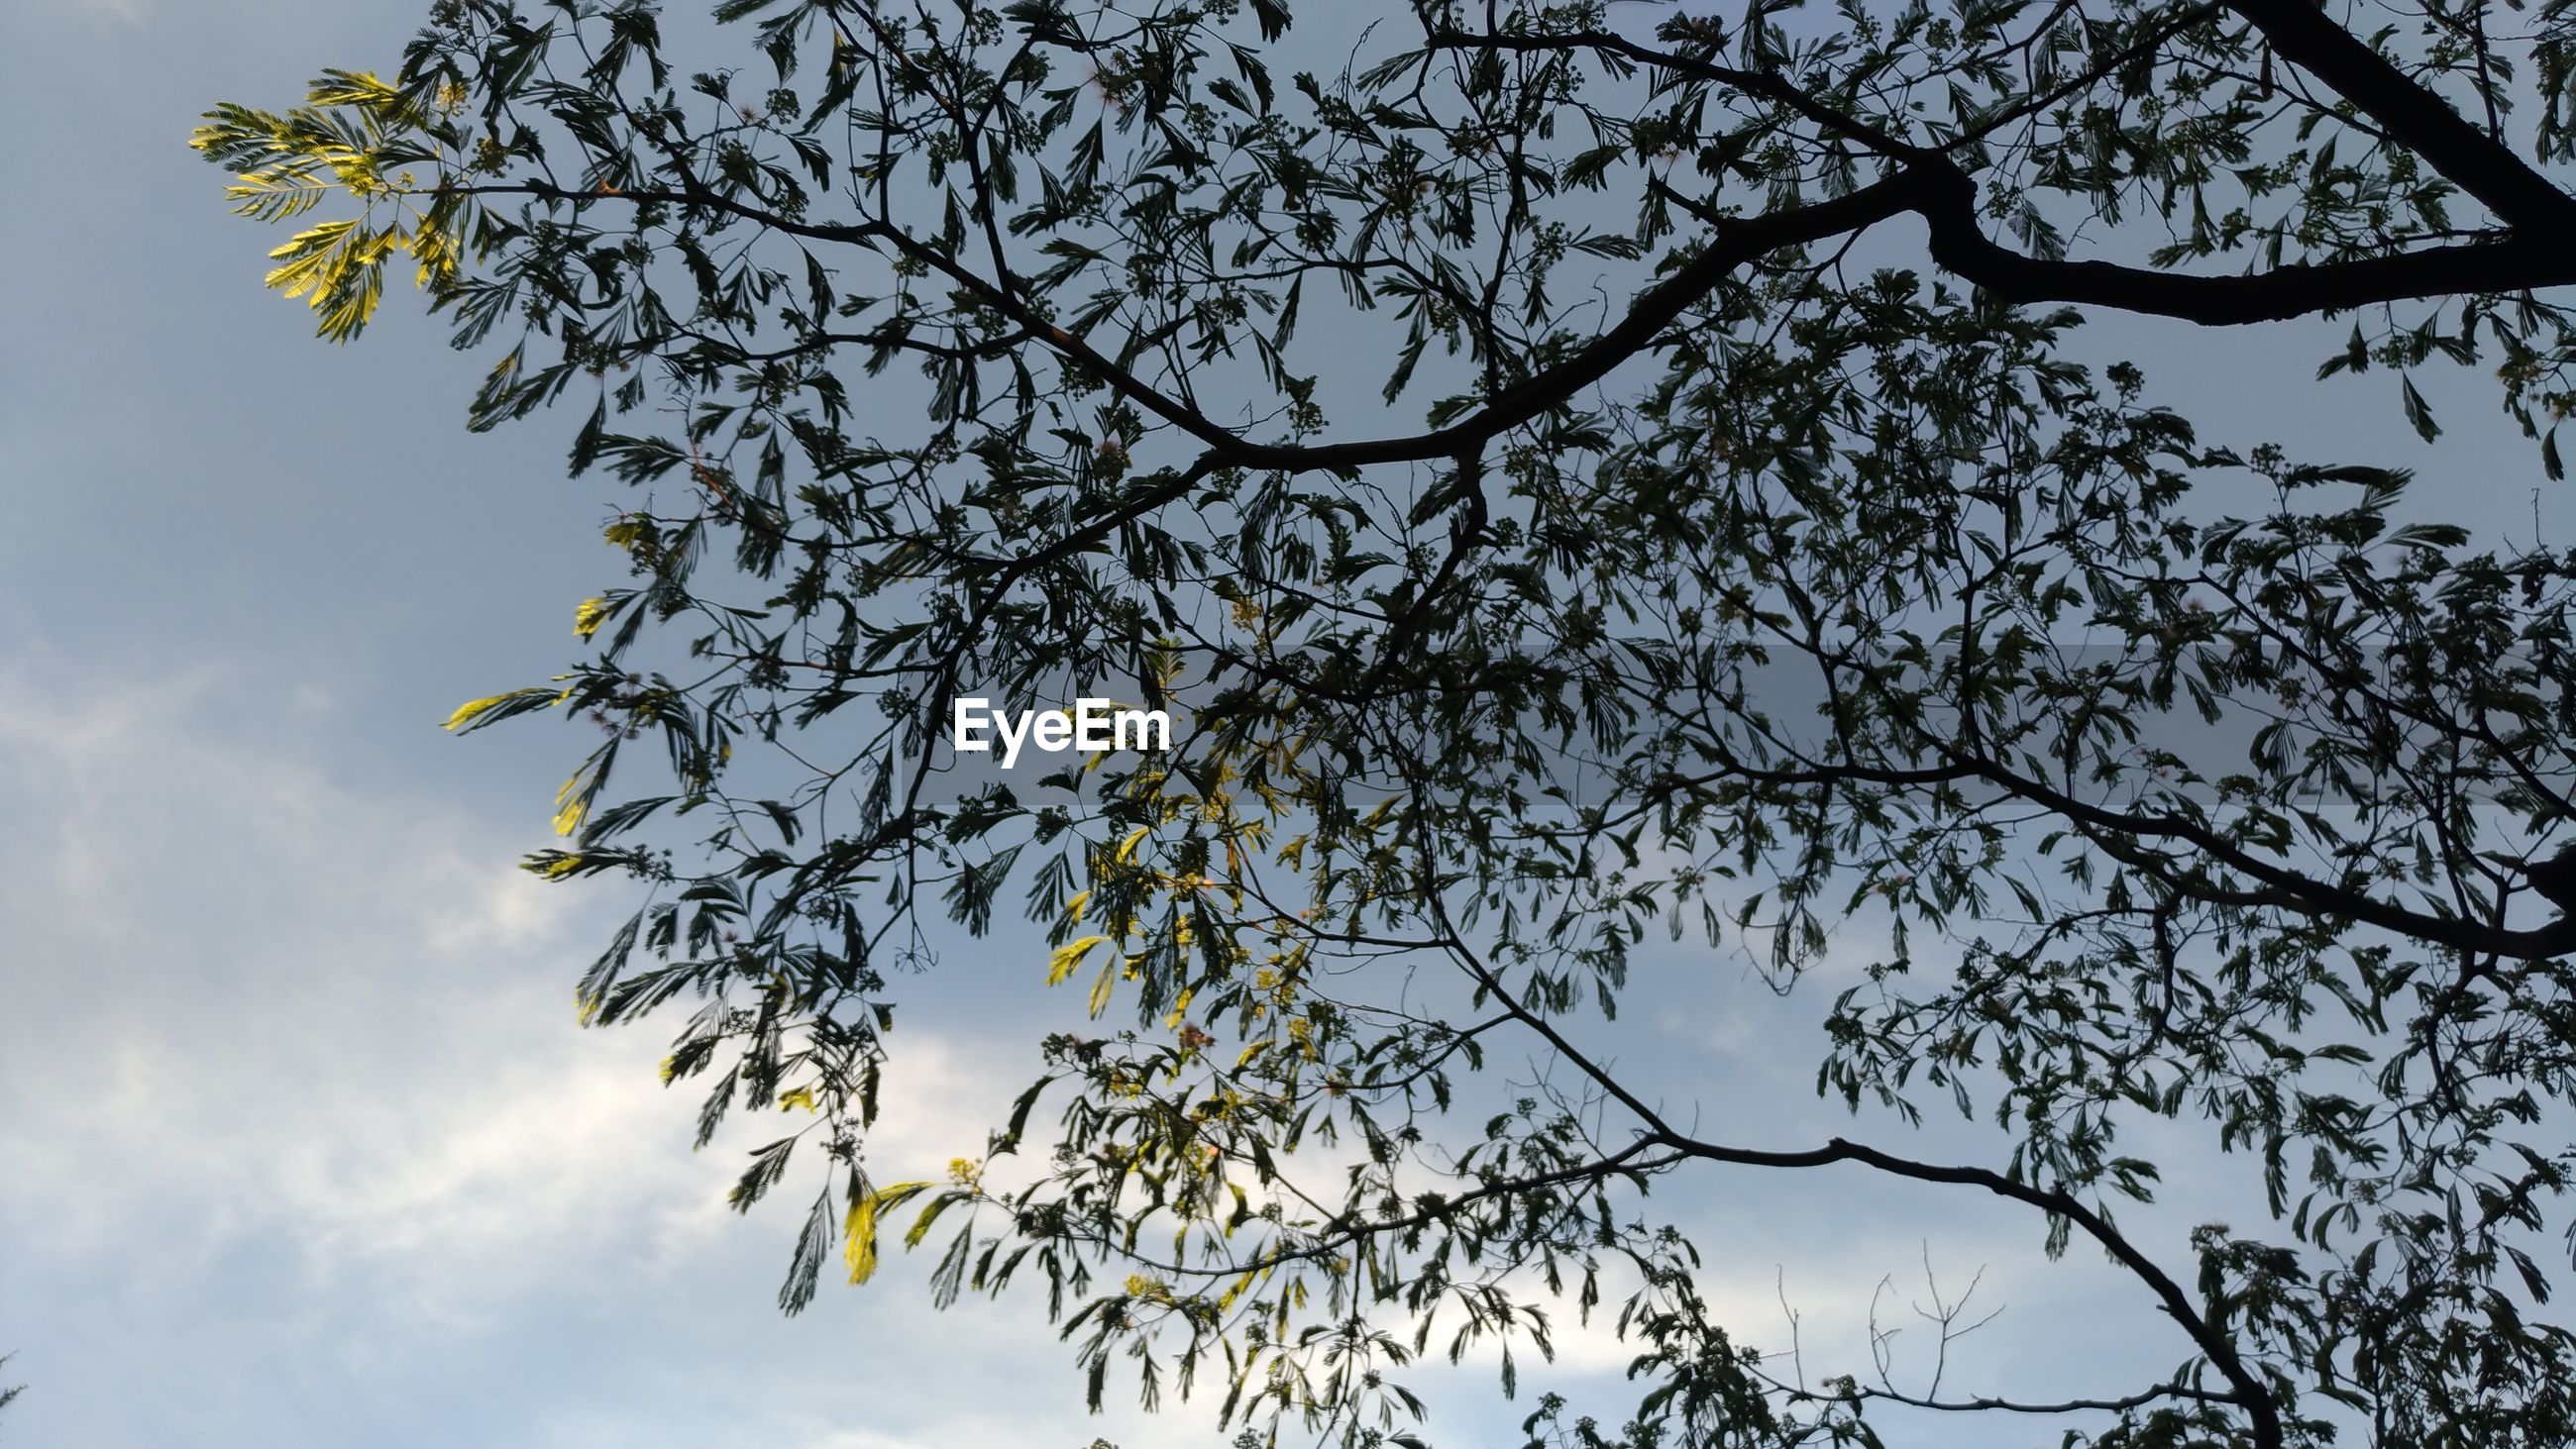 LOW ANGLE VIEW OF TREE BRANCH